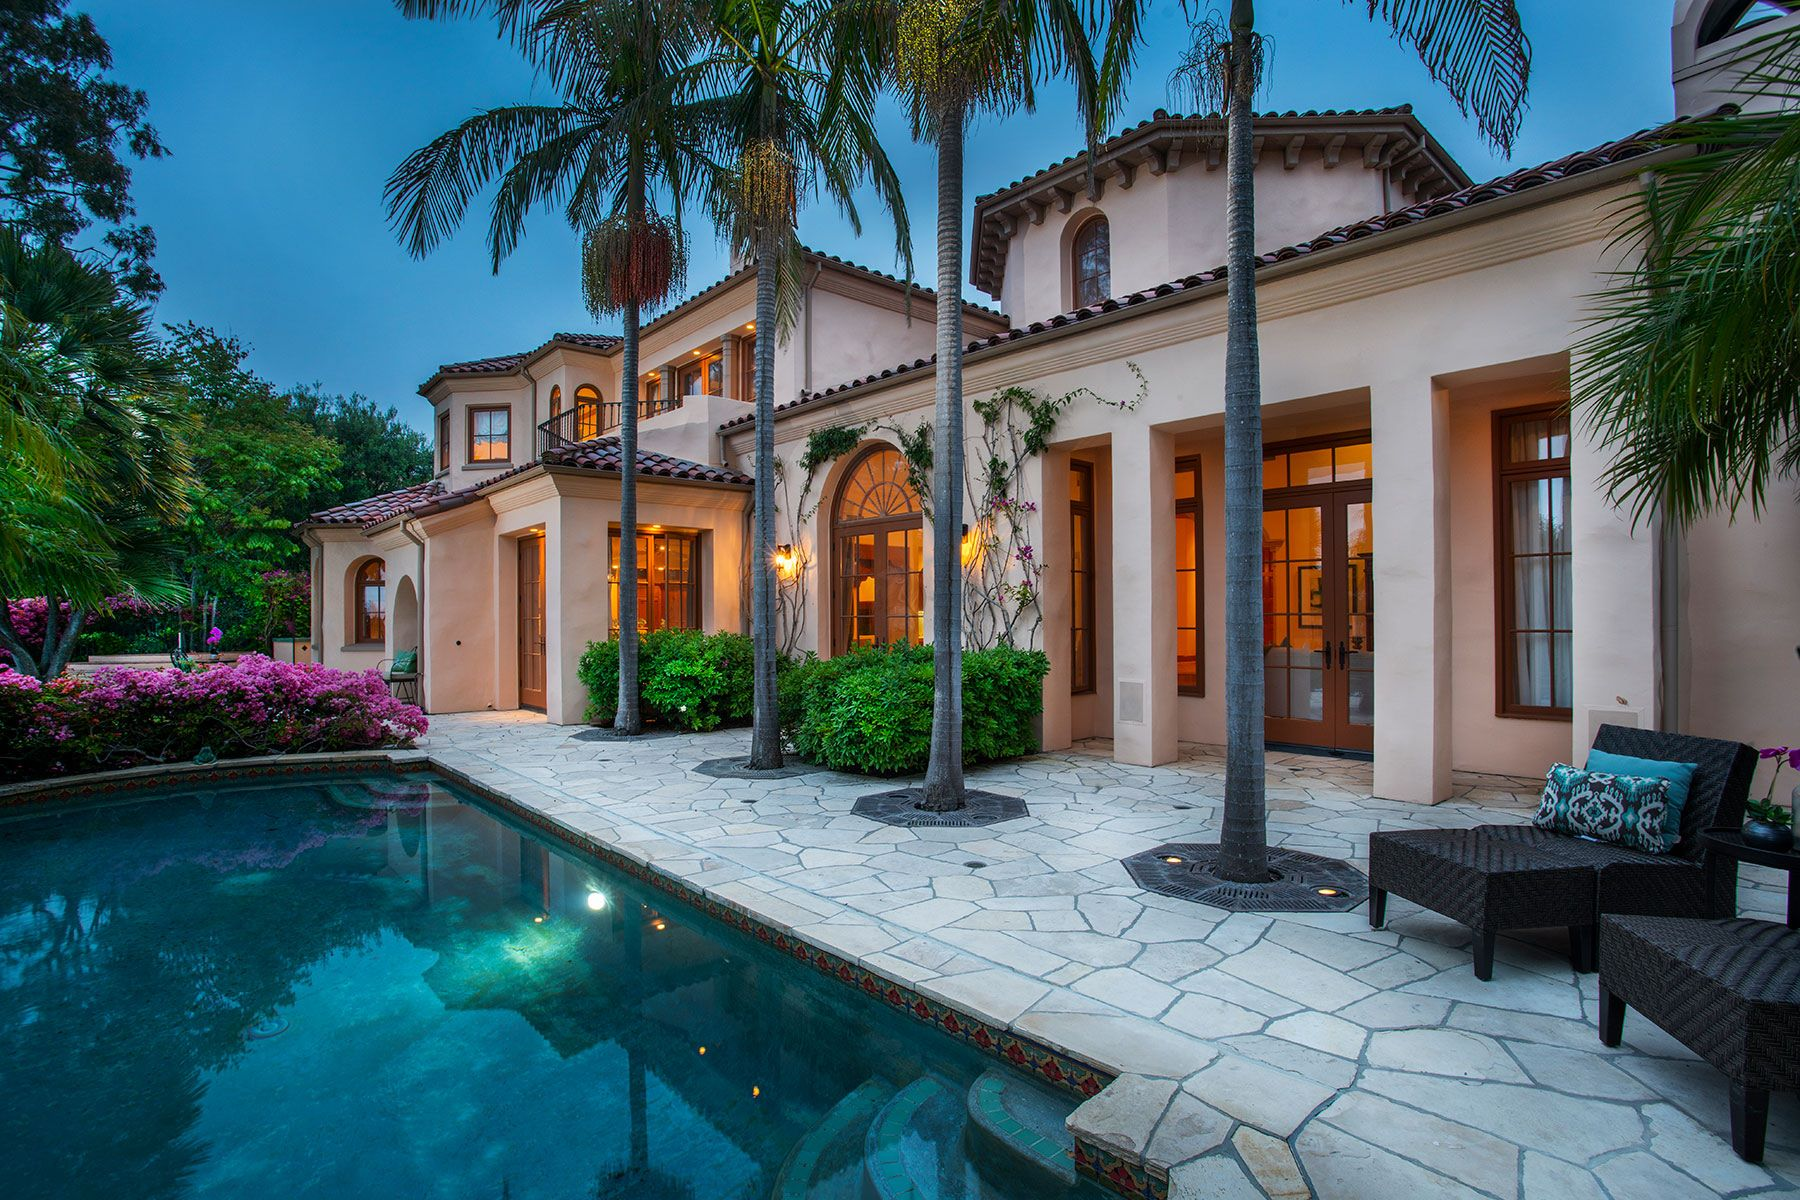 Single Family Homes for Active at 9 Seahaven Newport Coast, California 92657 United States